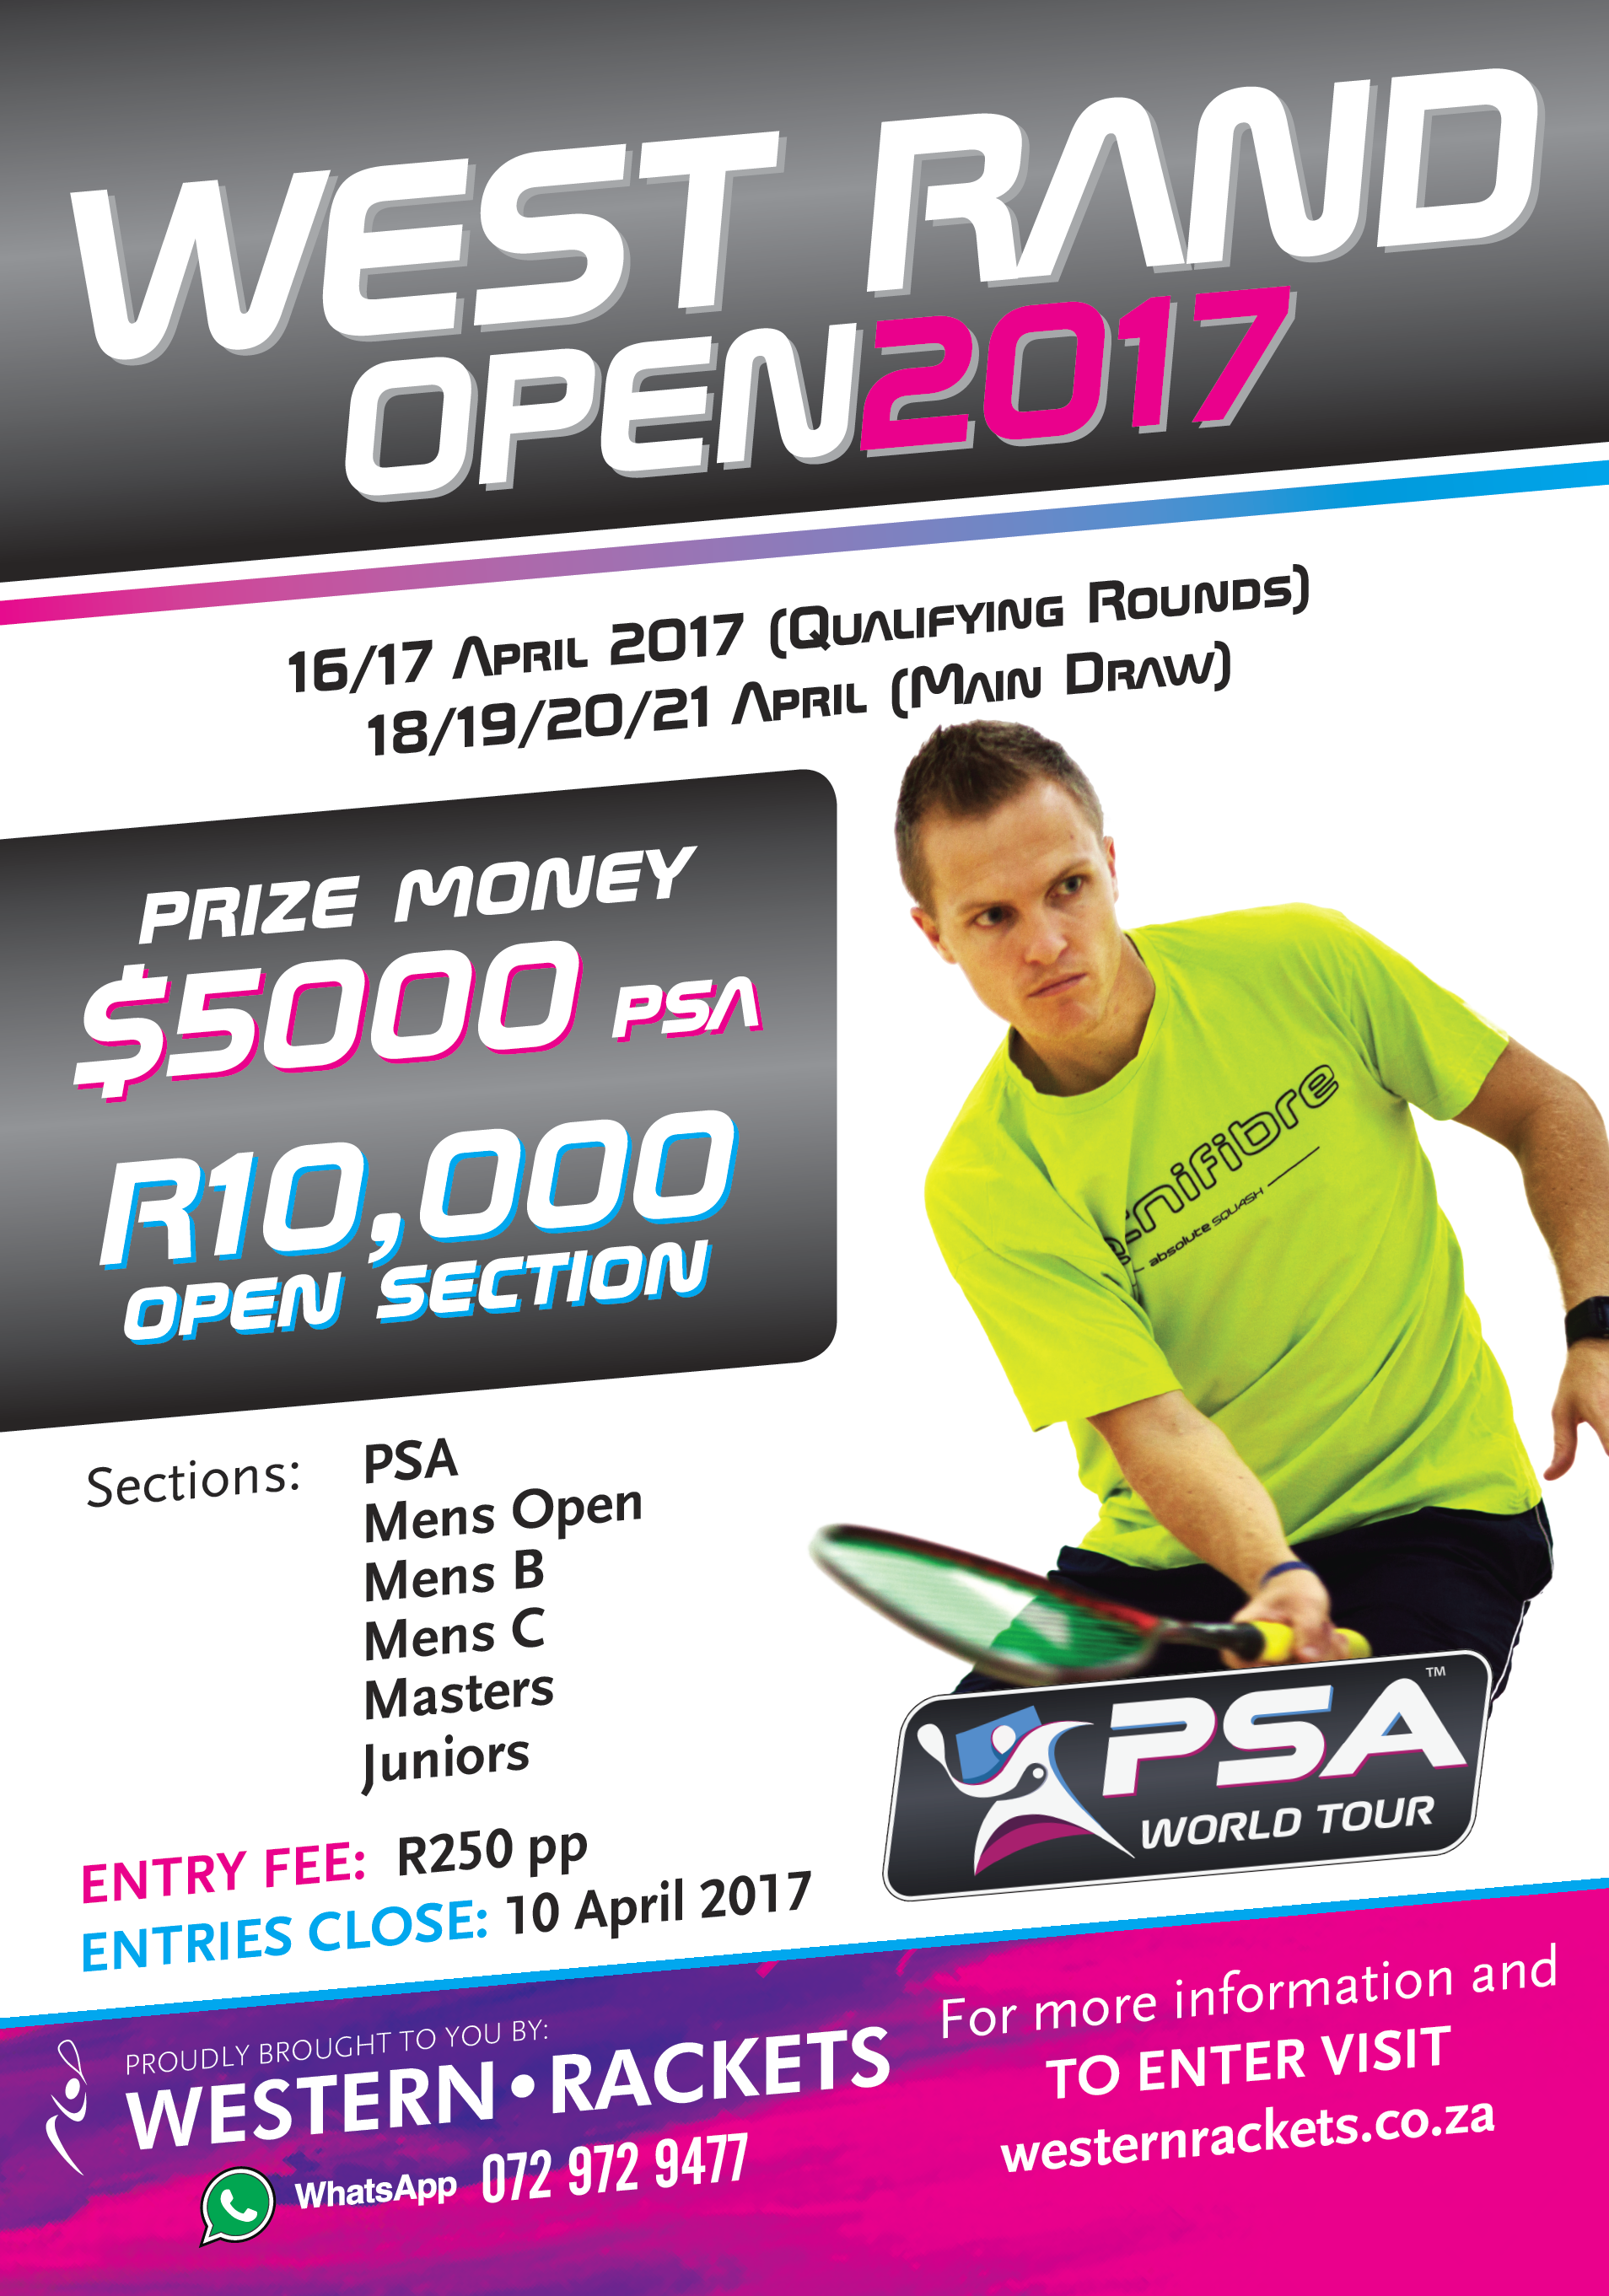 west-rand-open-2017